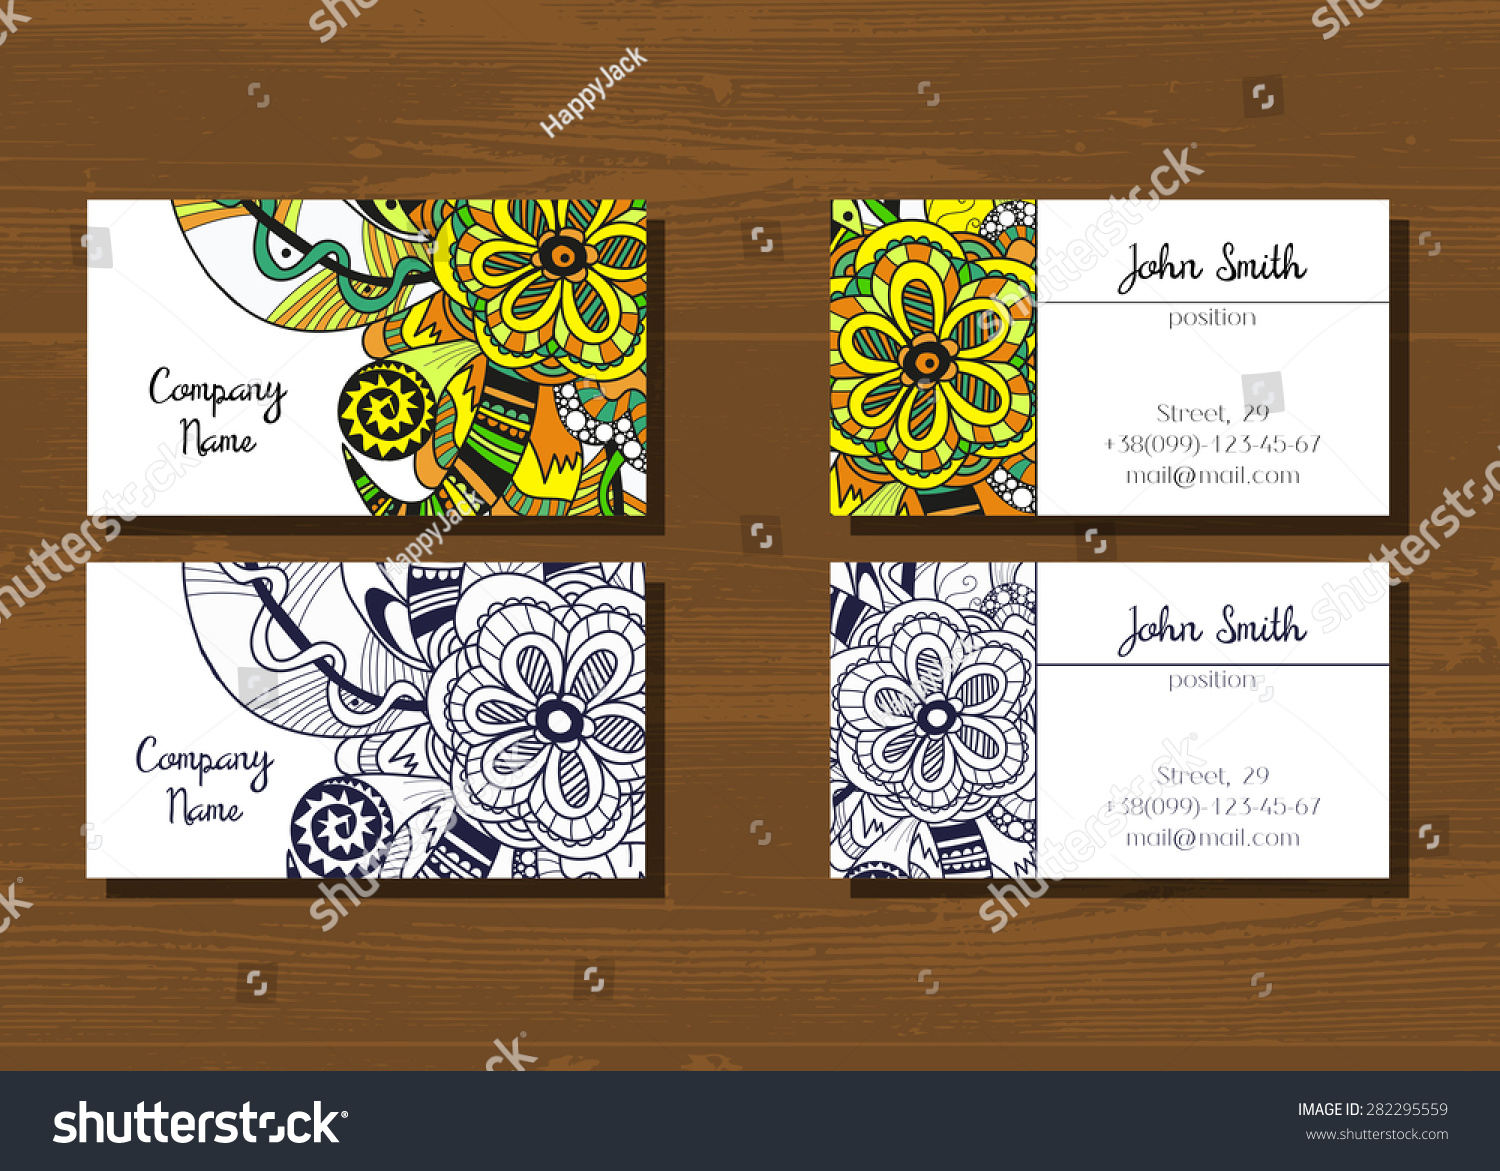 Generous Business Cards With Two Addresses Photos - Business Card ...